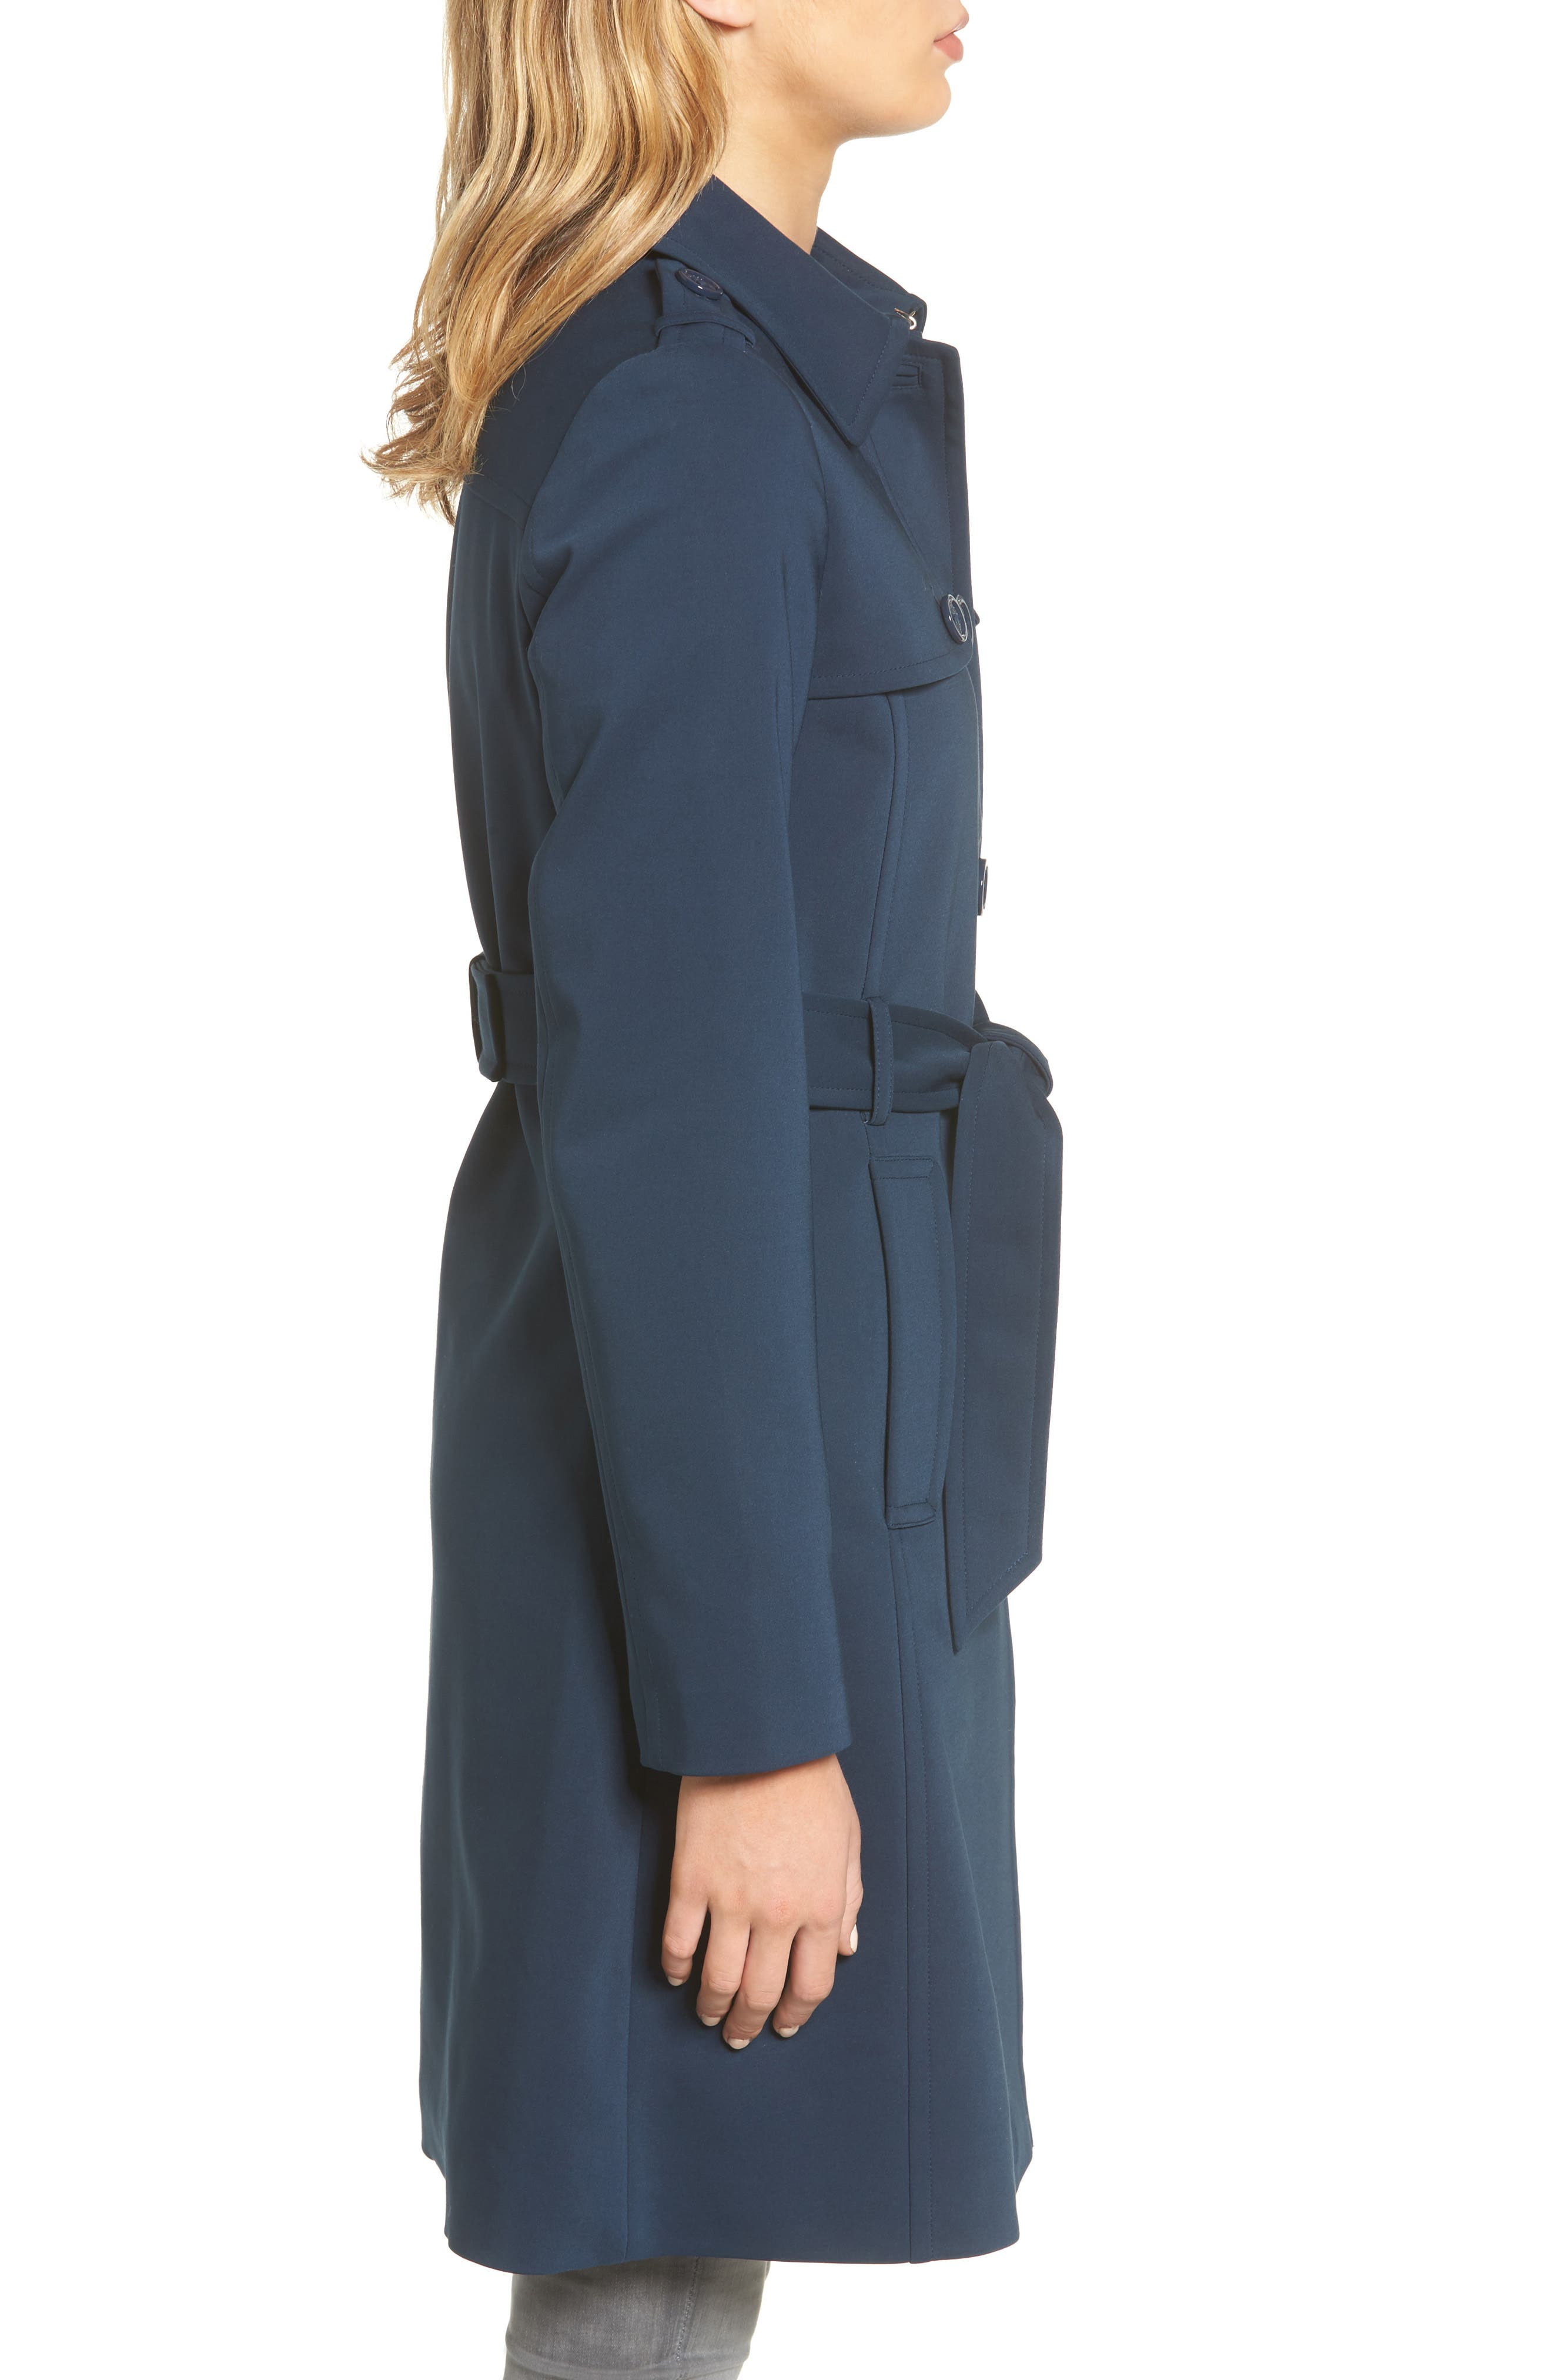 3-in-1 trench coat,                             Alternate thumbnail 3, color,                             Rich Navy